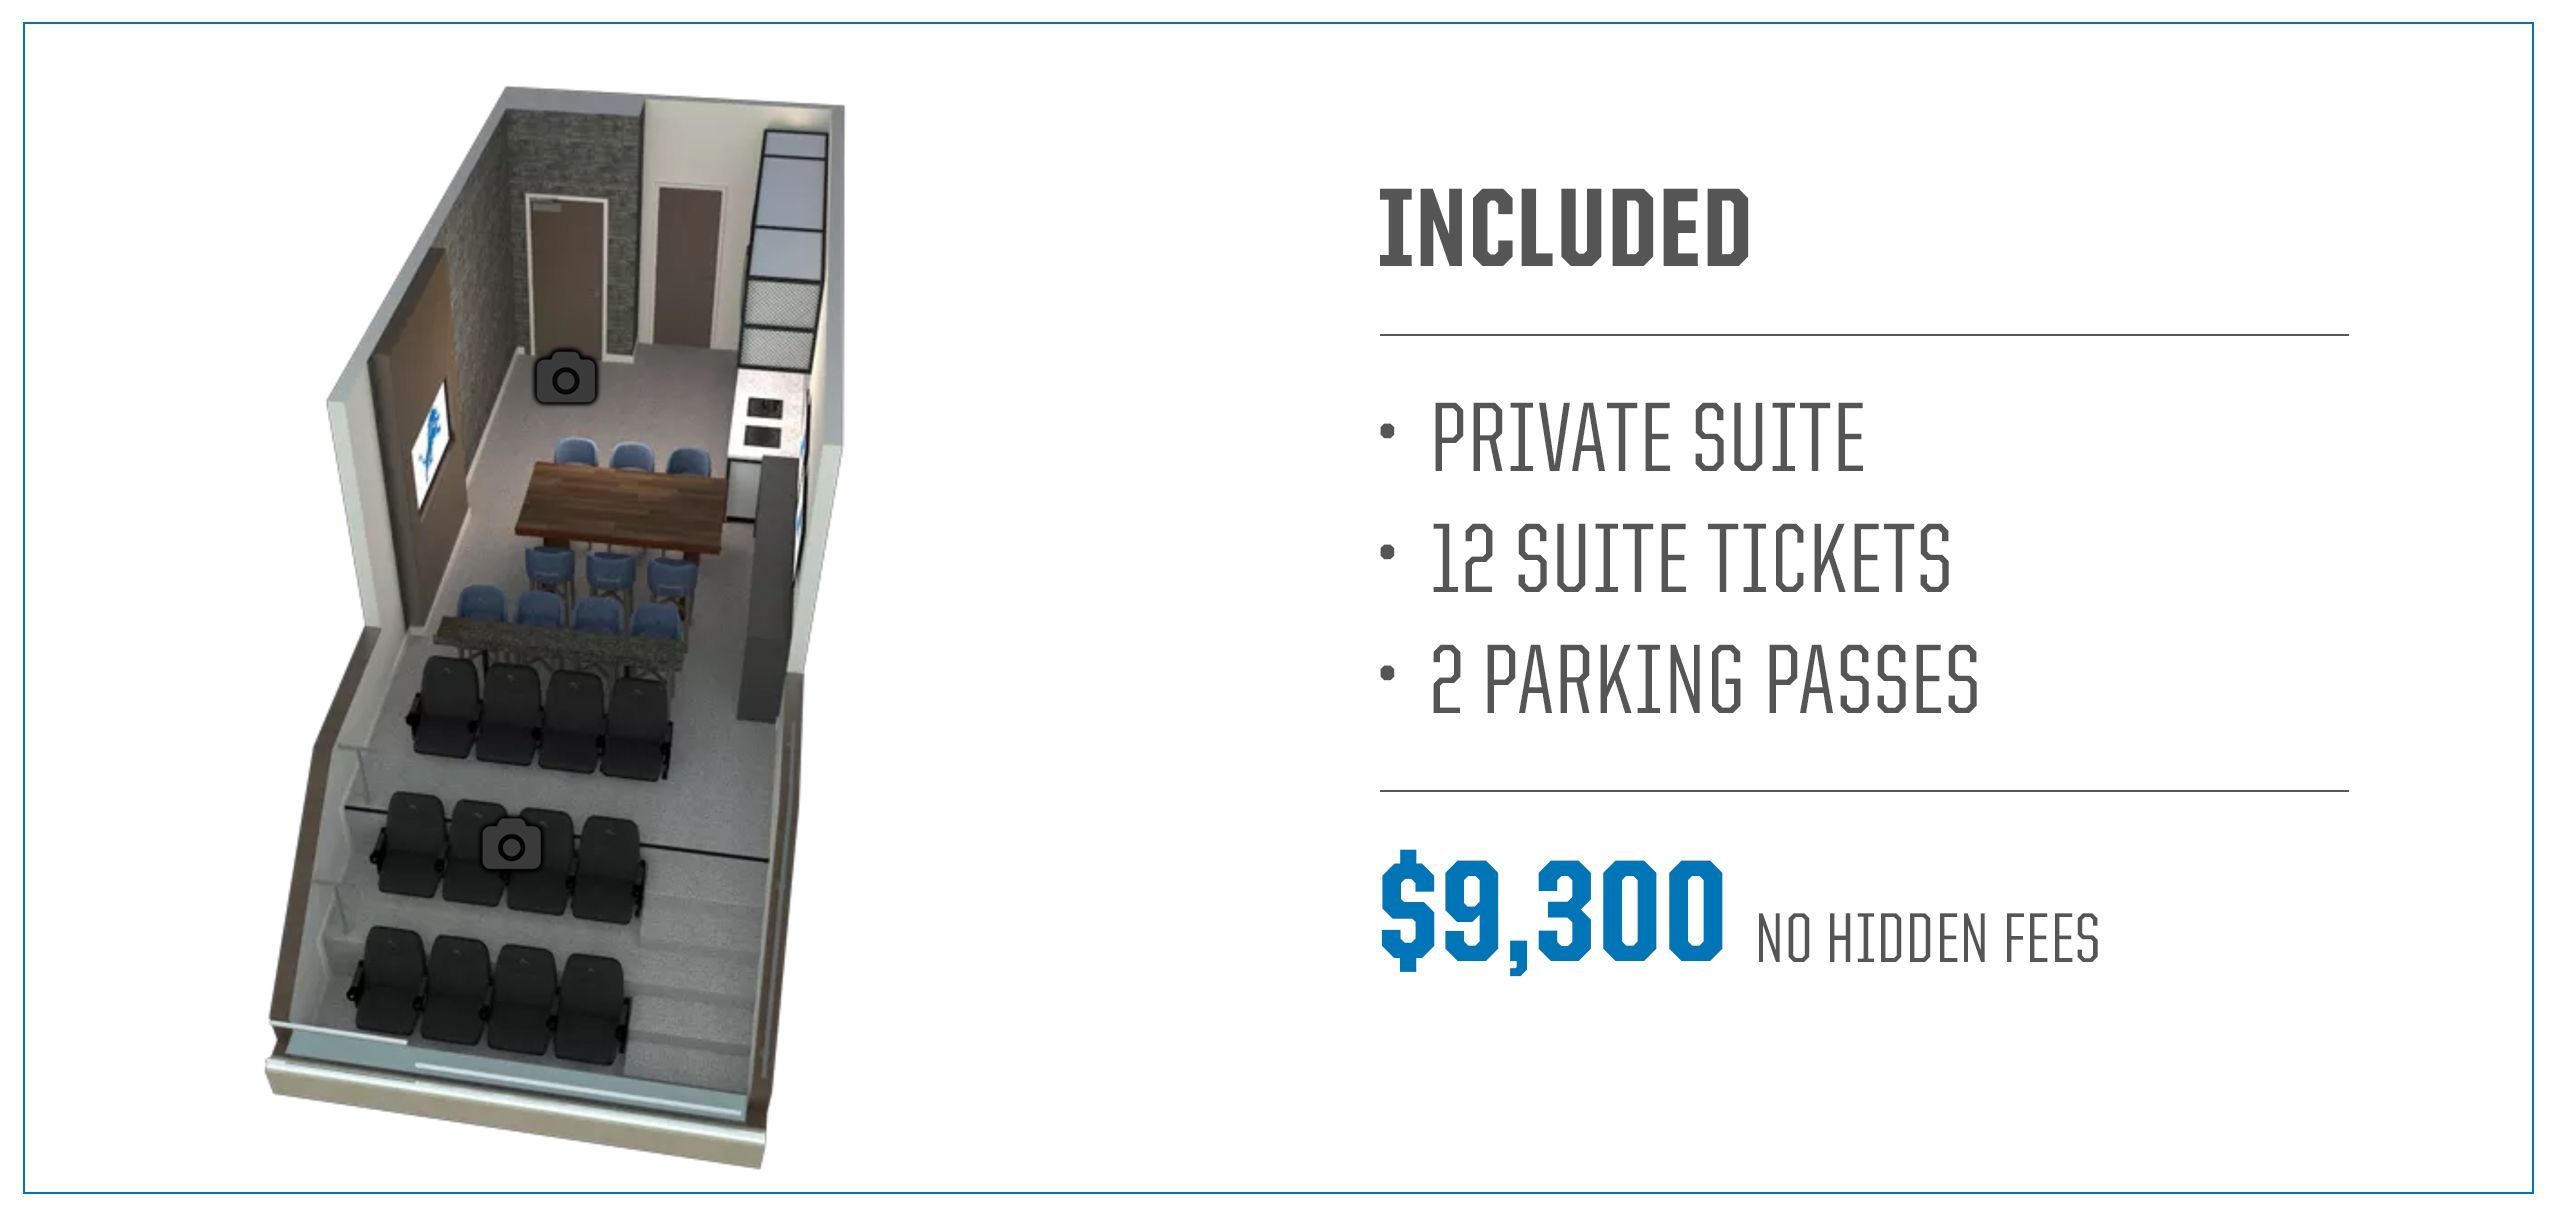 2020-suite-purchase-information-map-630-buccaneers